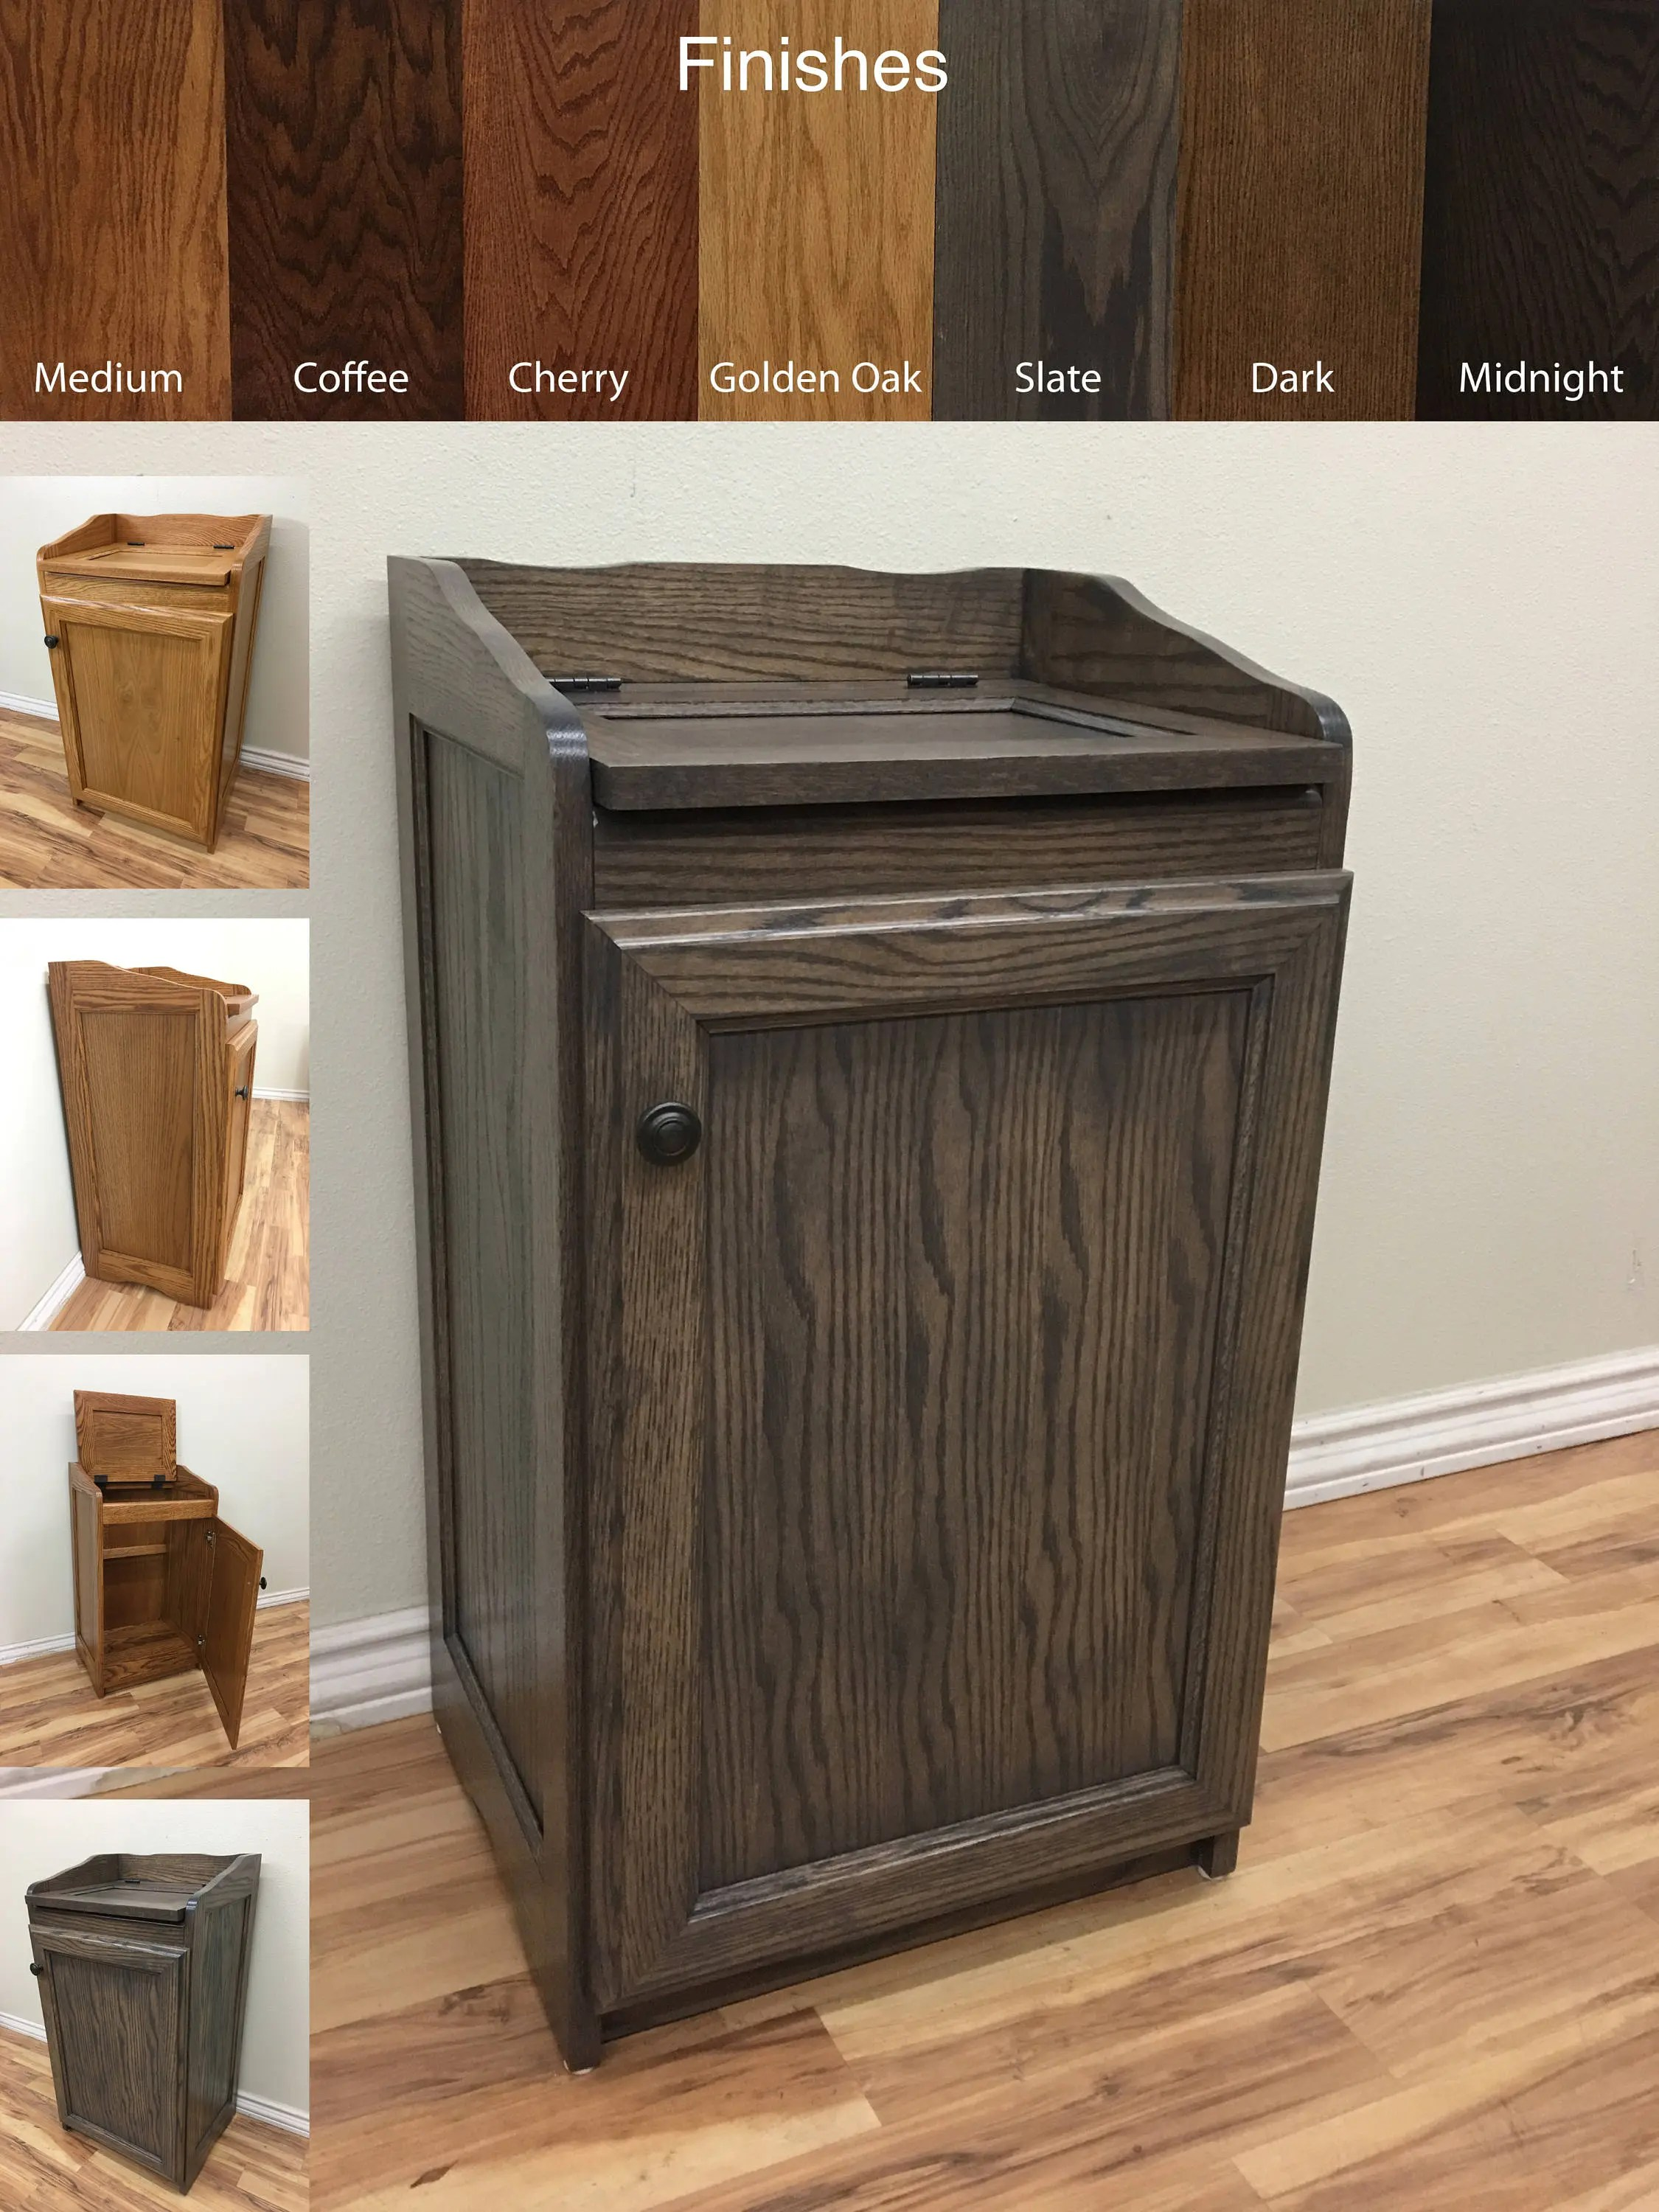 Kitchen Organizer Storage Wood Wastebasket Kitchen Organizer Storage Trash Can Storage Cabinet In Oak Wood